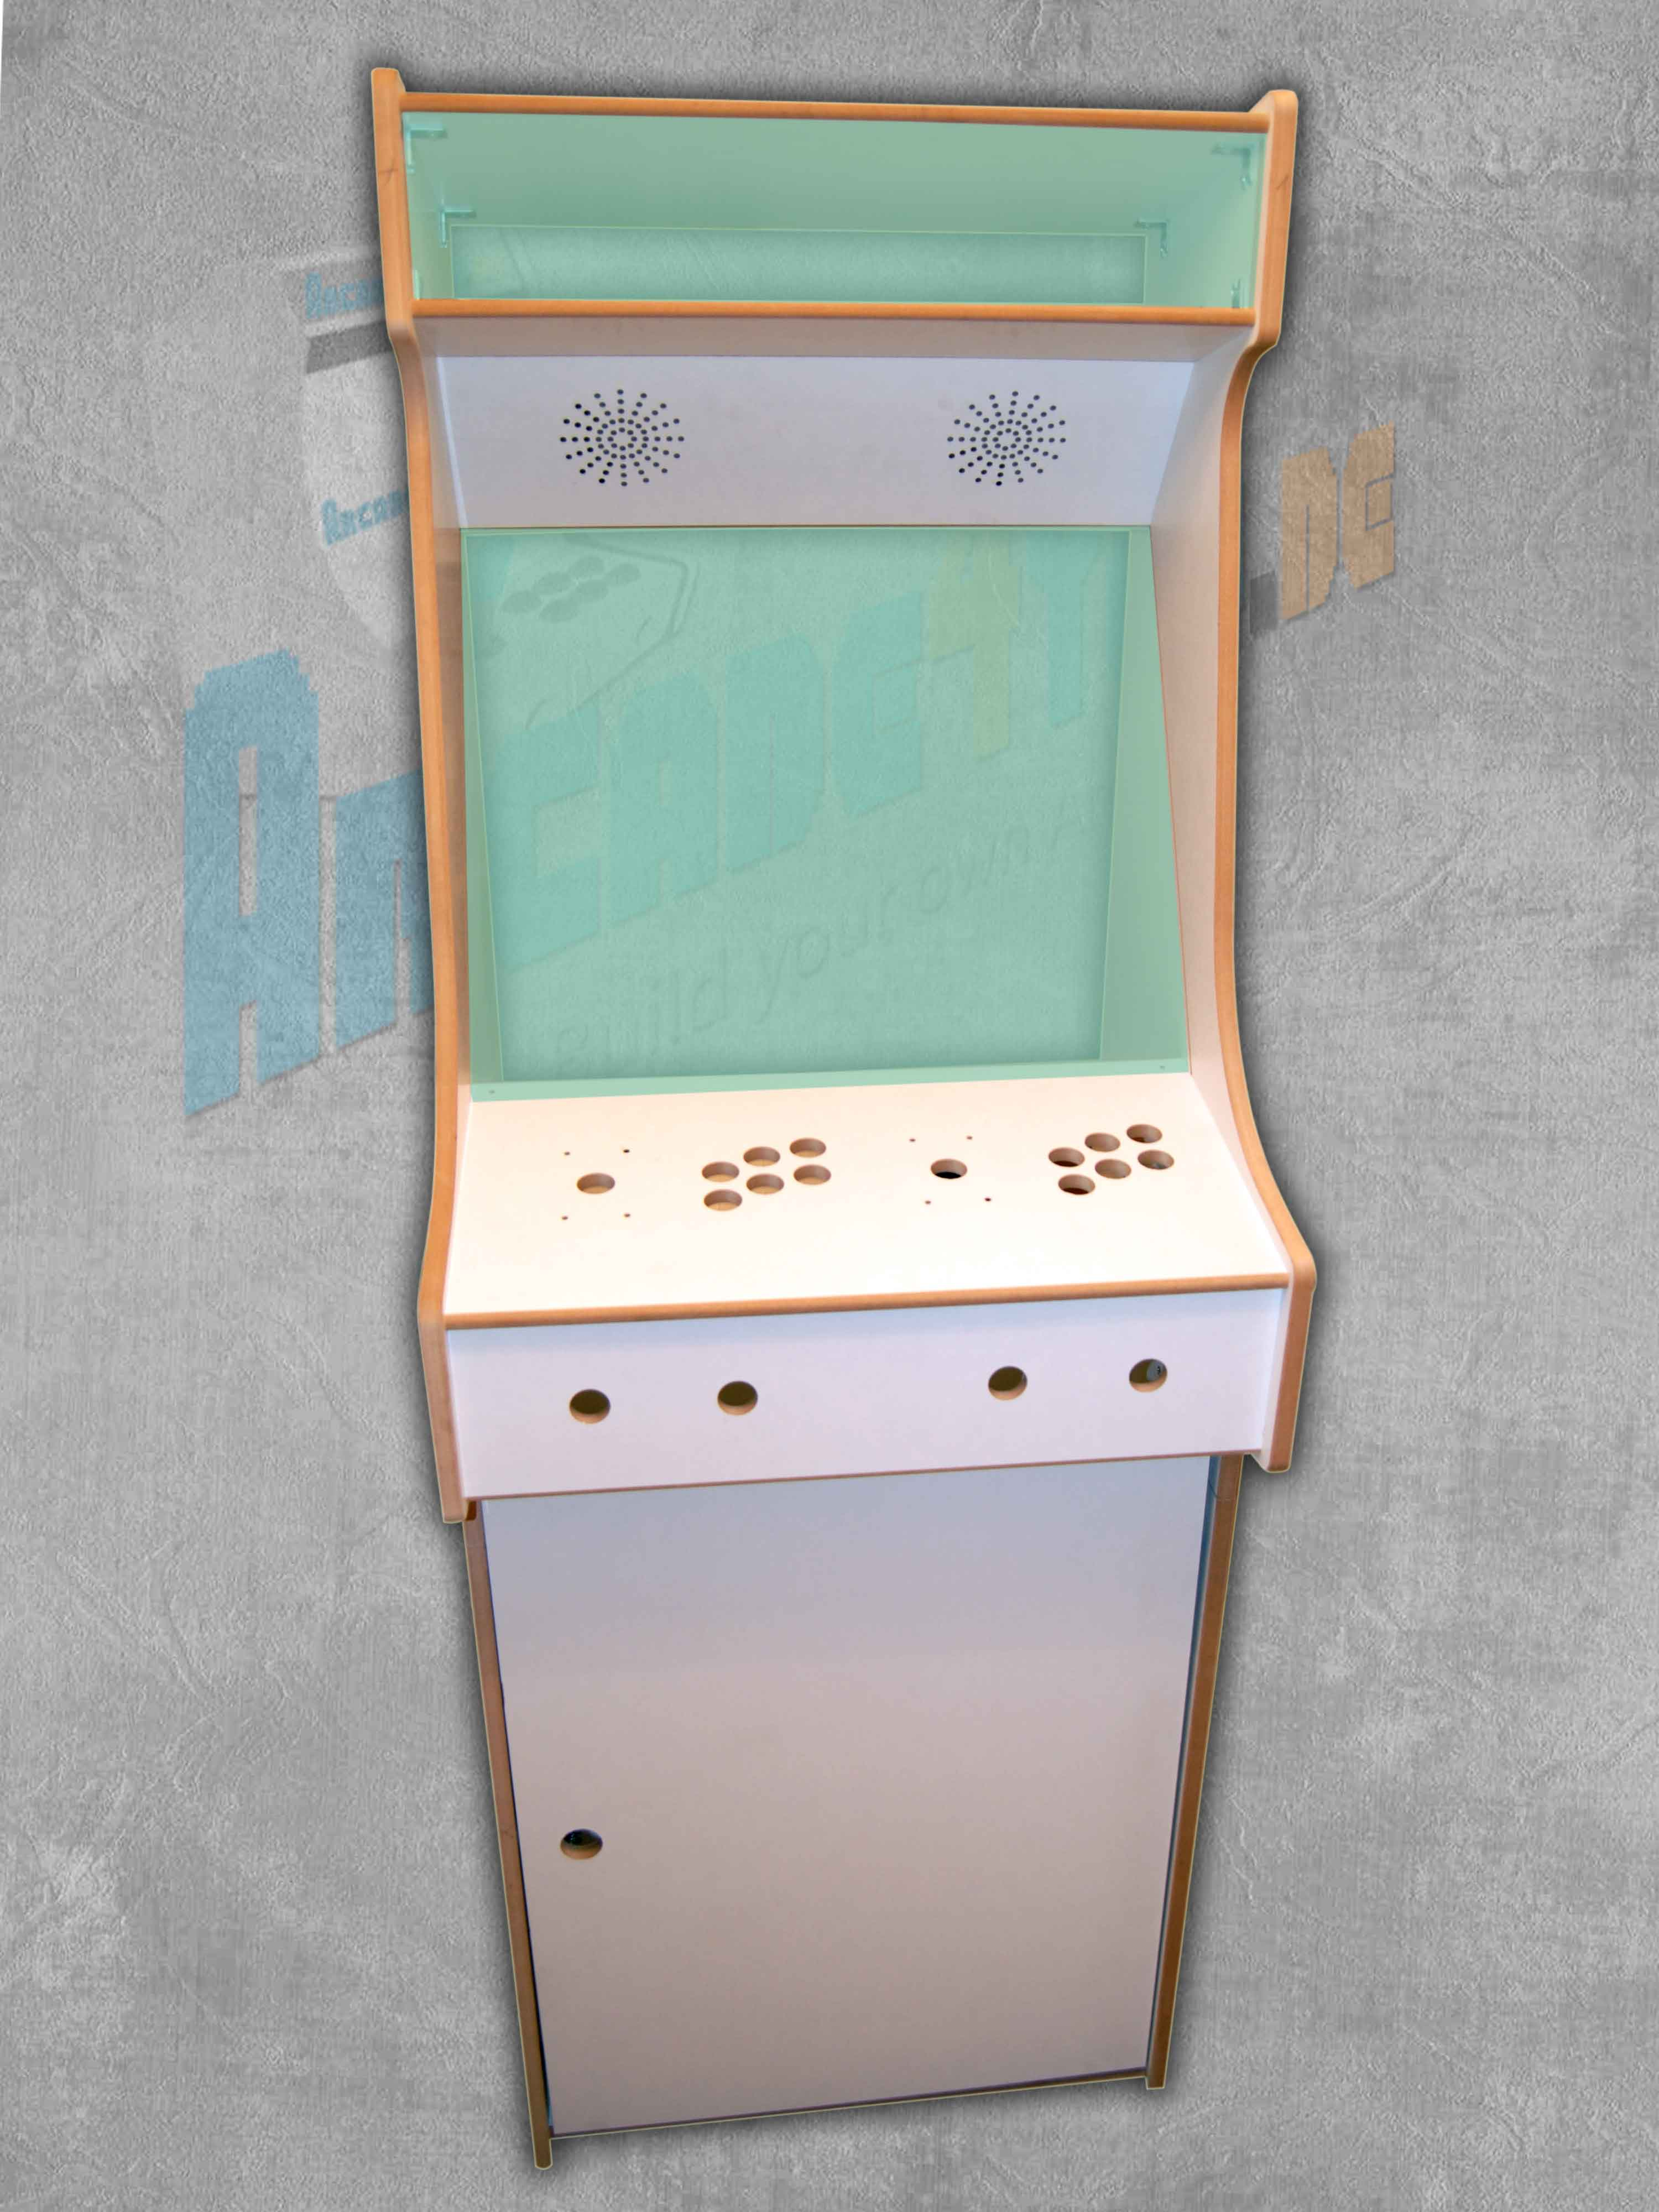 arcade_upright_cabinet_front4_grey